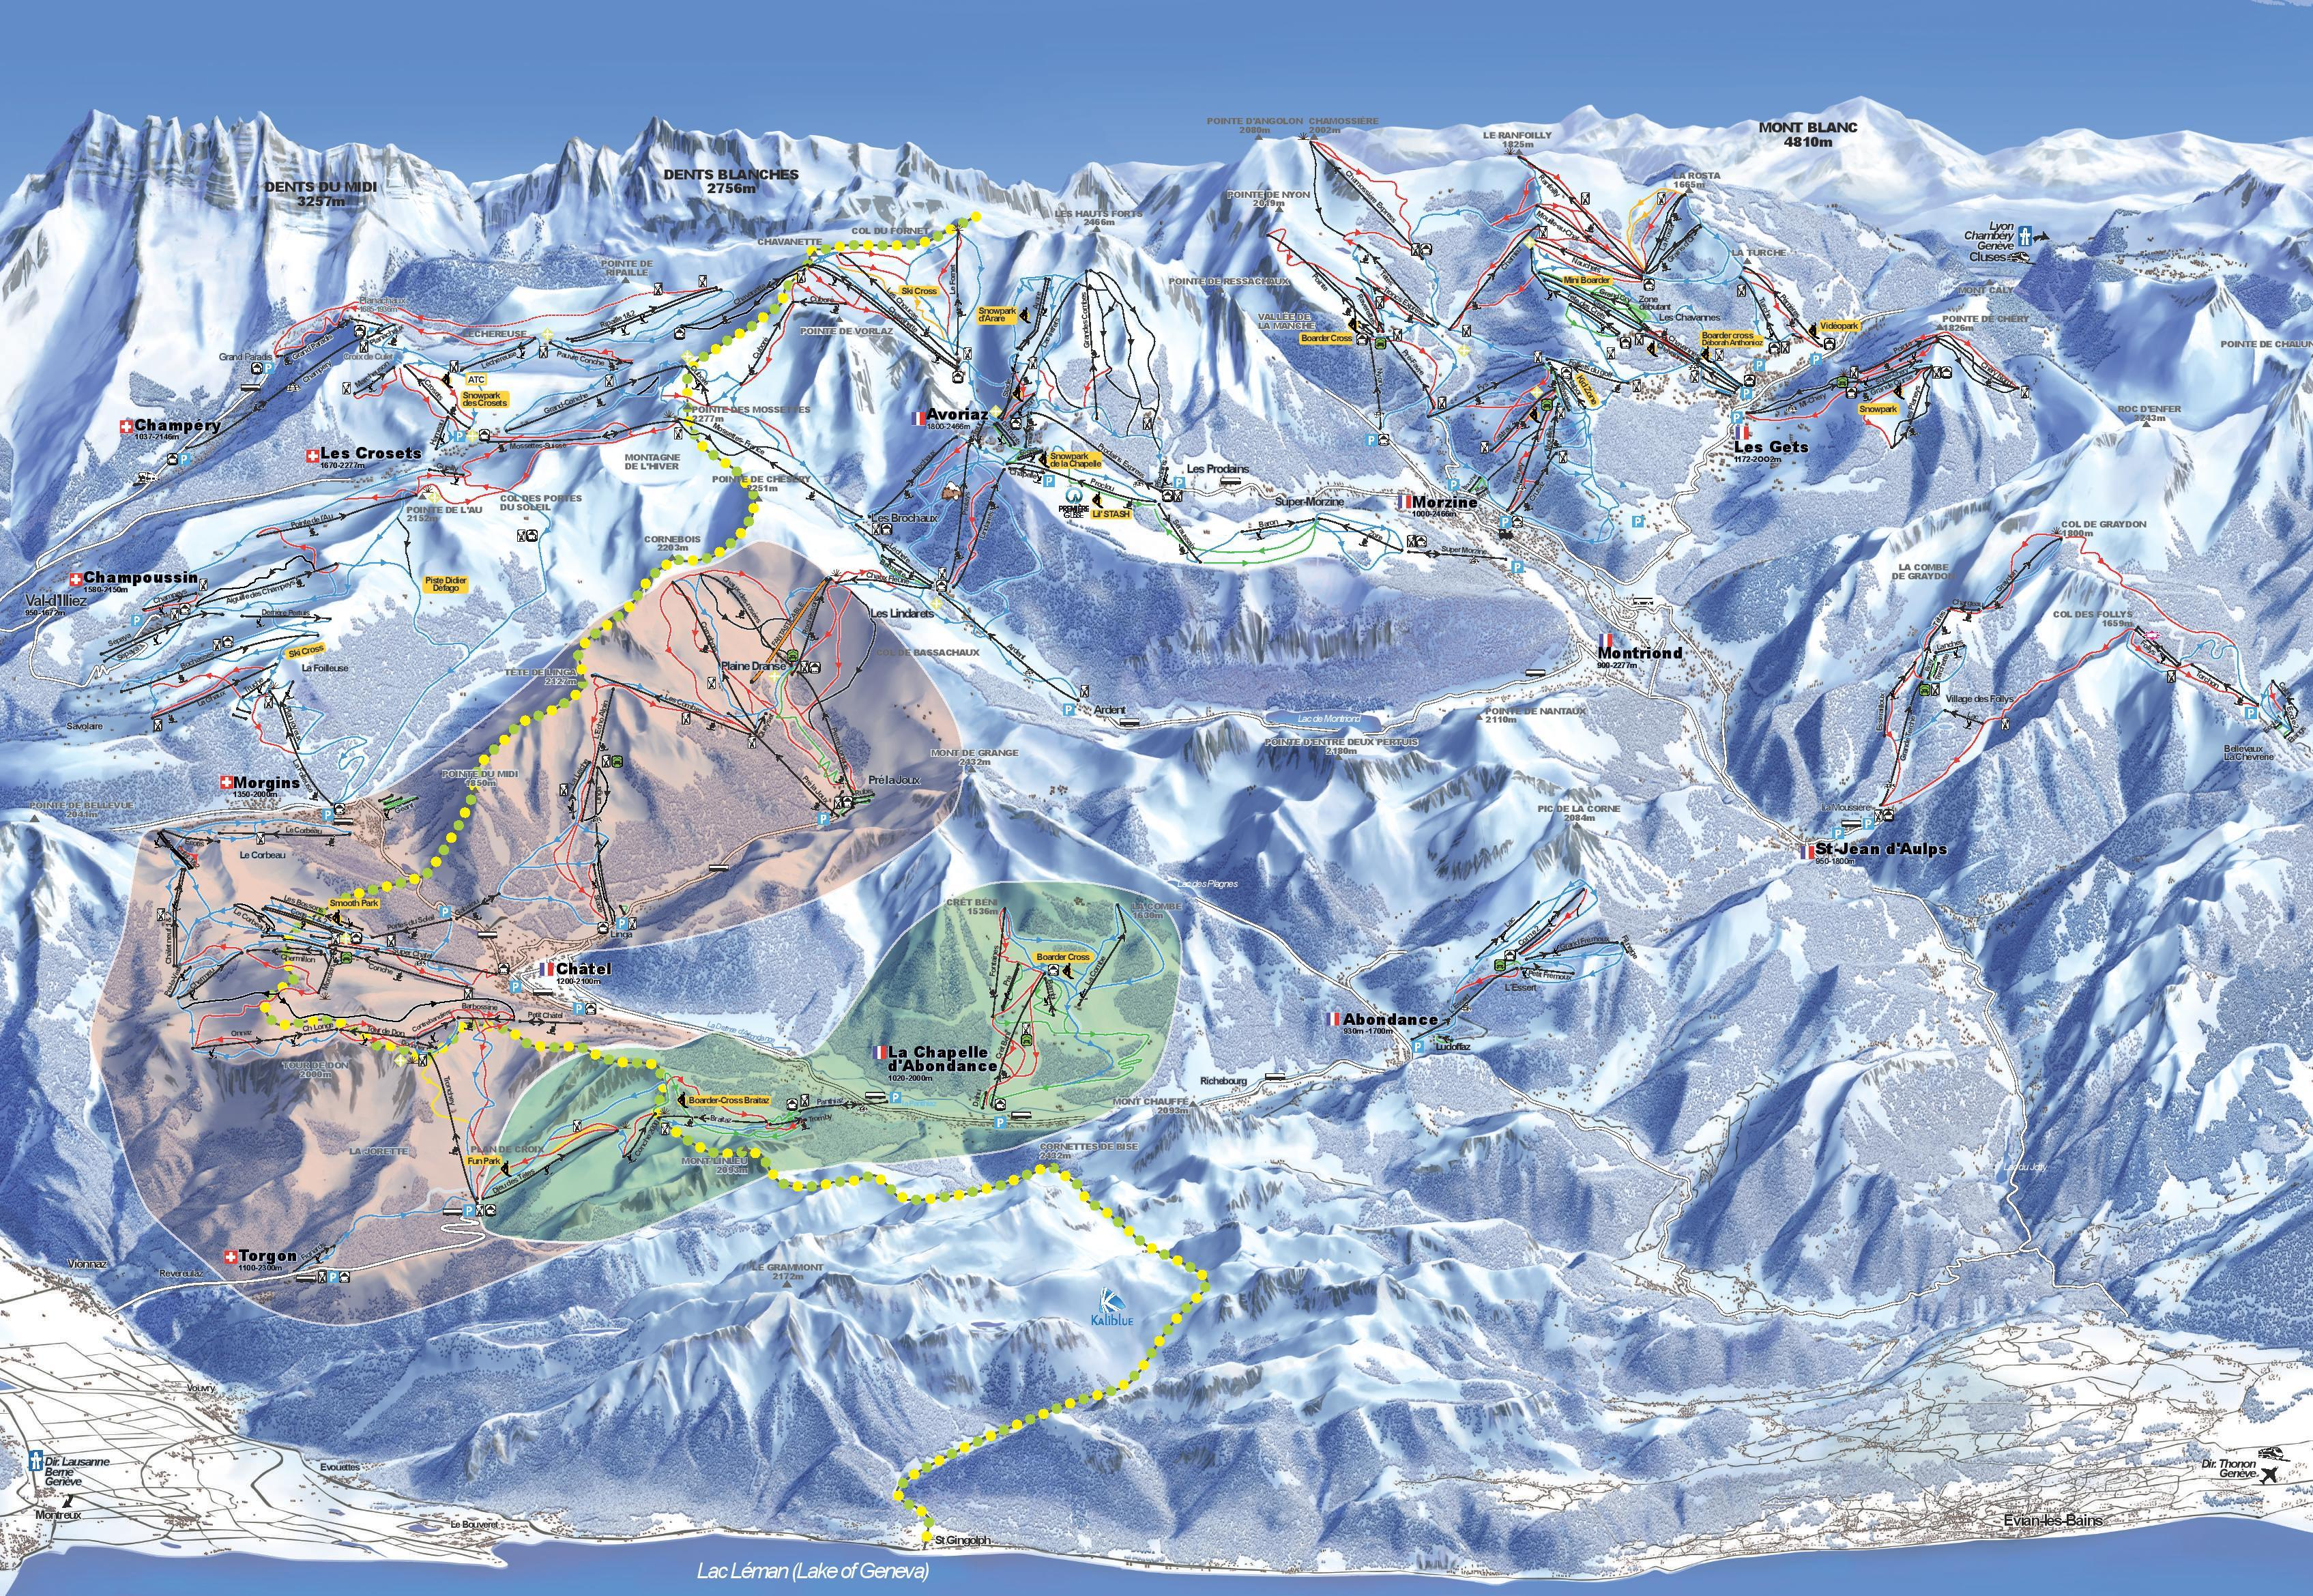 Le Meilleur La Chapelle D Abondance Piste Map Plan Of Ski Slopes And Ce Mois Ci